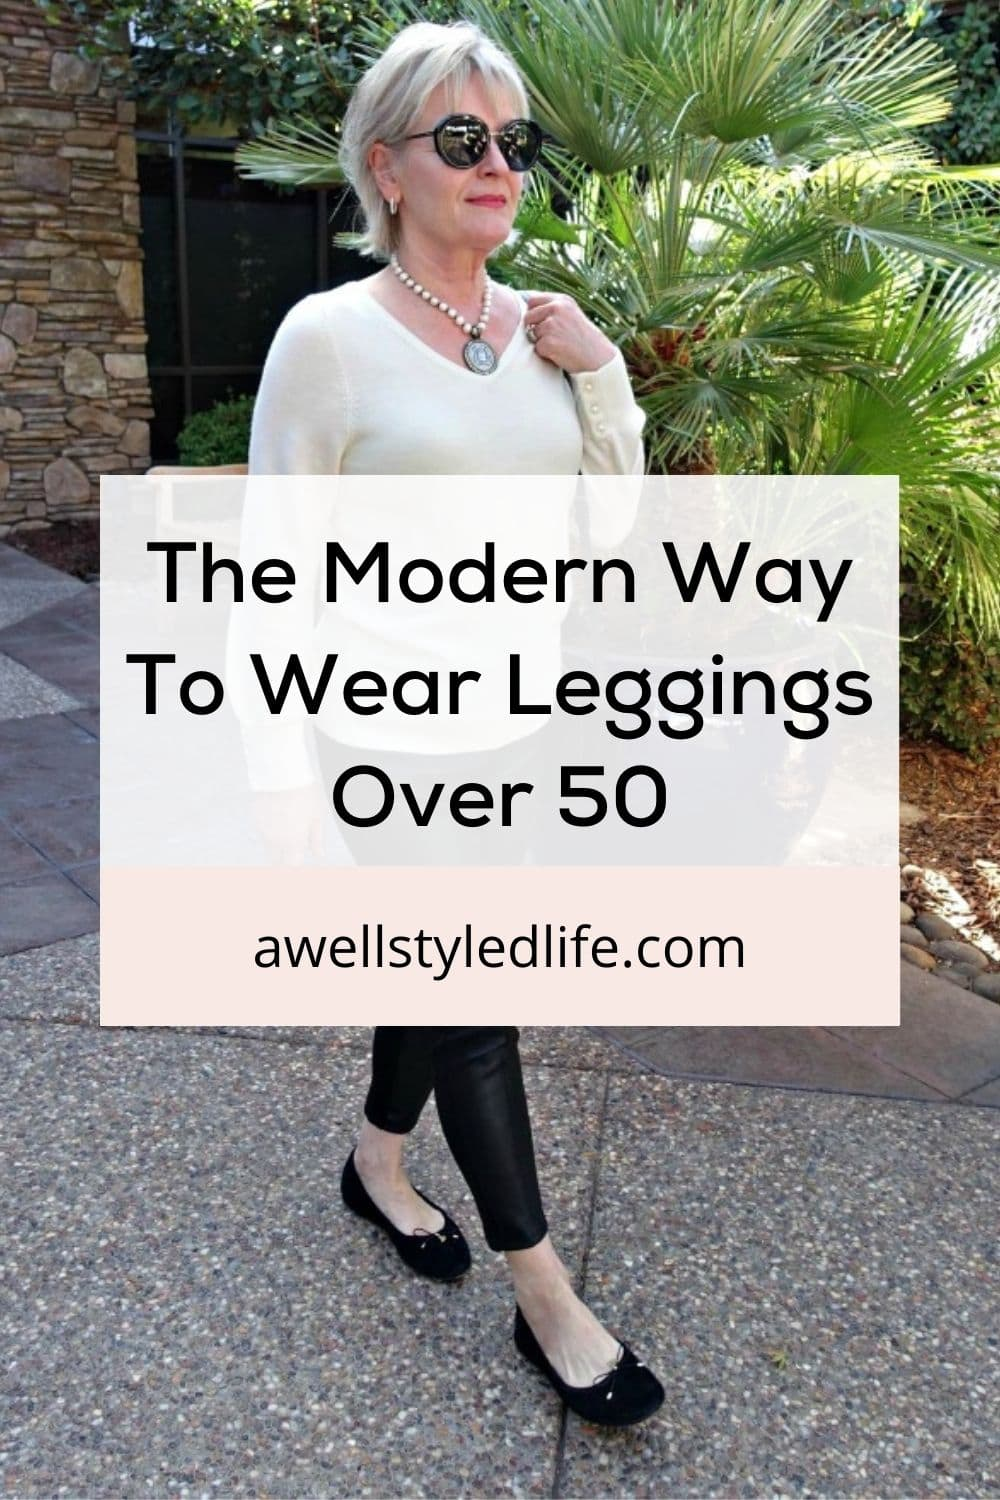 The Modern Way To Wear Leggings After 50